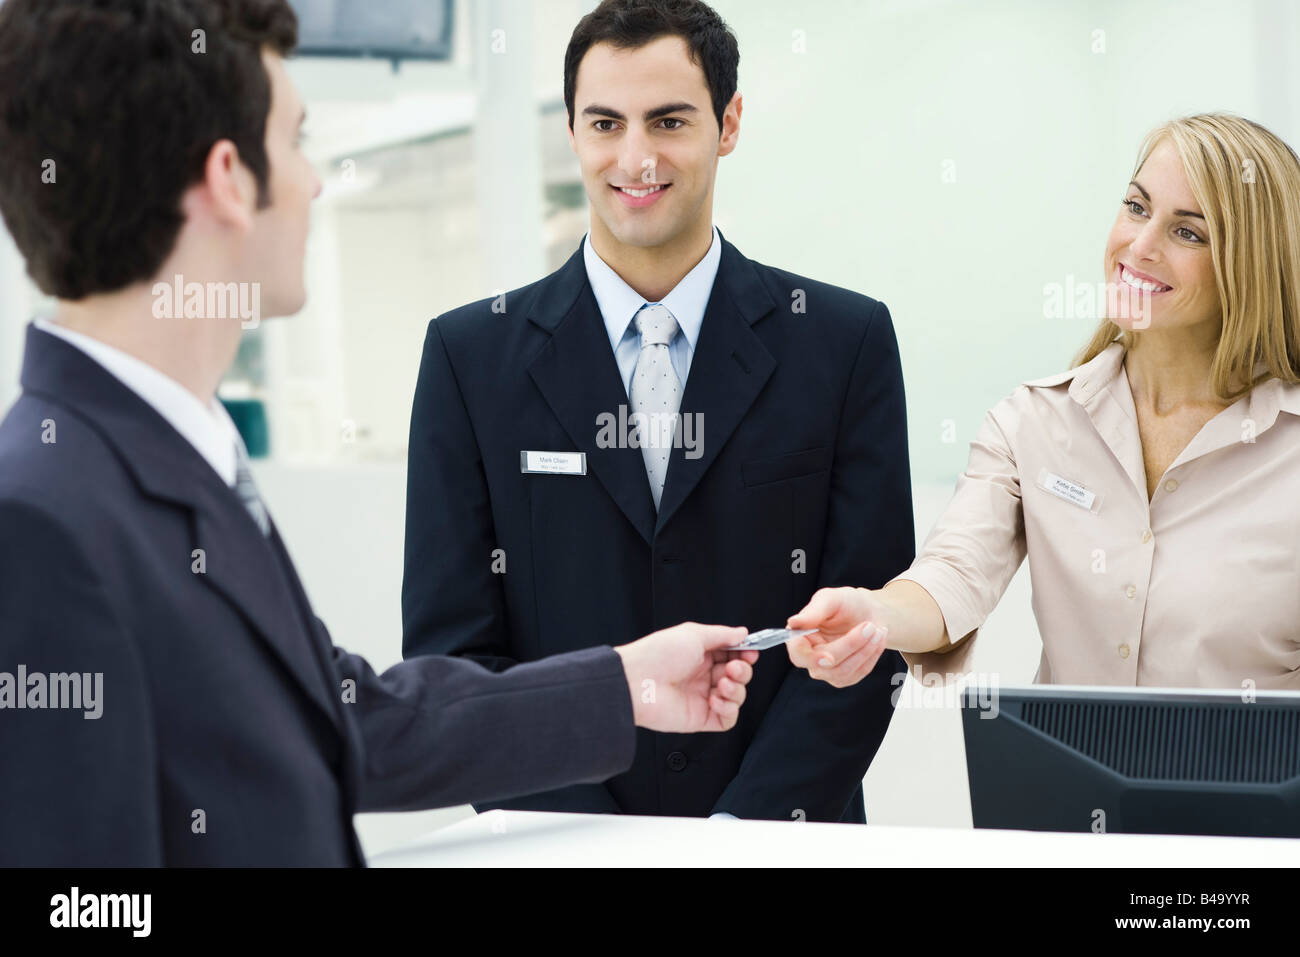 Man giving credit card to smiling customer service representatives Stock Photo